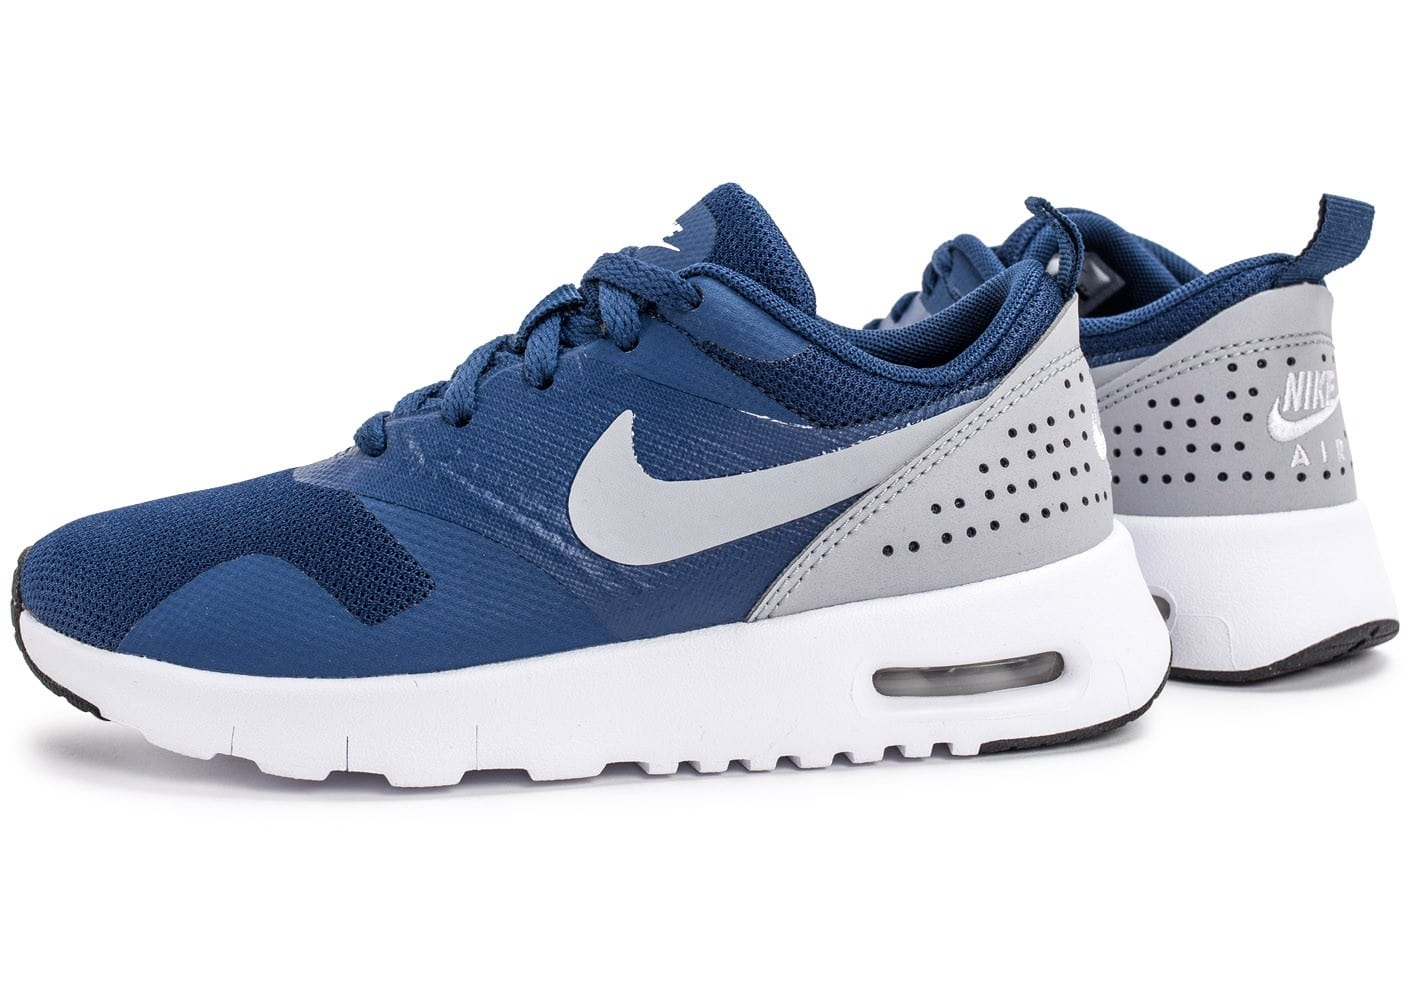 nike air max tavas se enfant bleue et grise chaussures enfant chausport. Black Bedroom Furniture Sets. Home Design Ideas